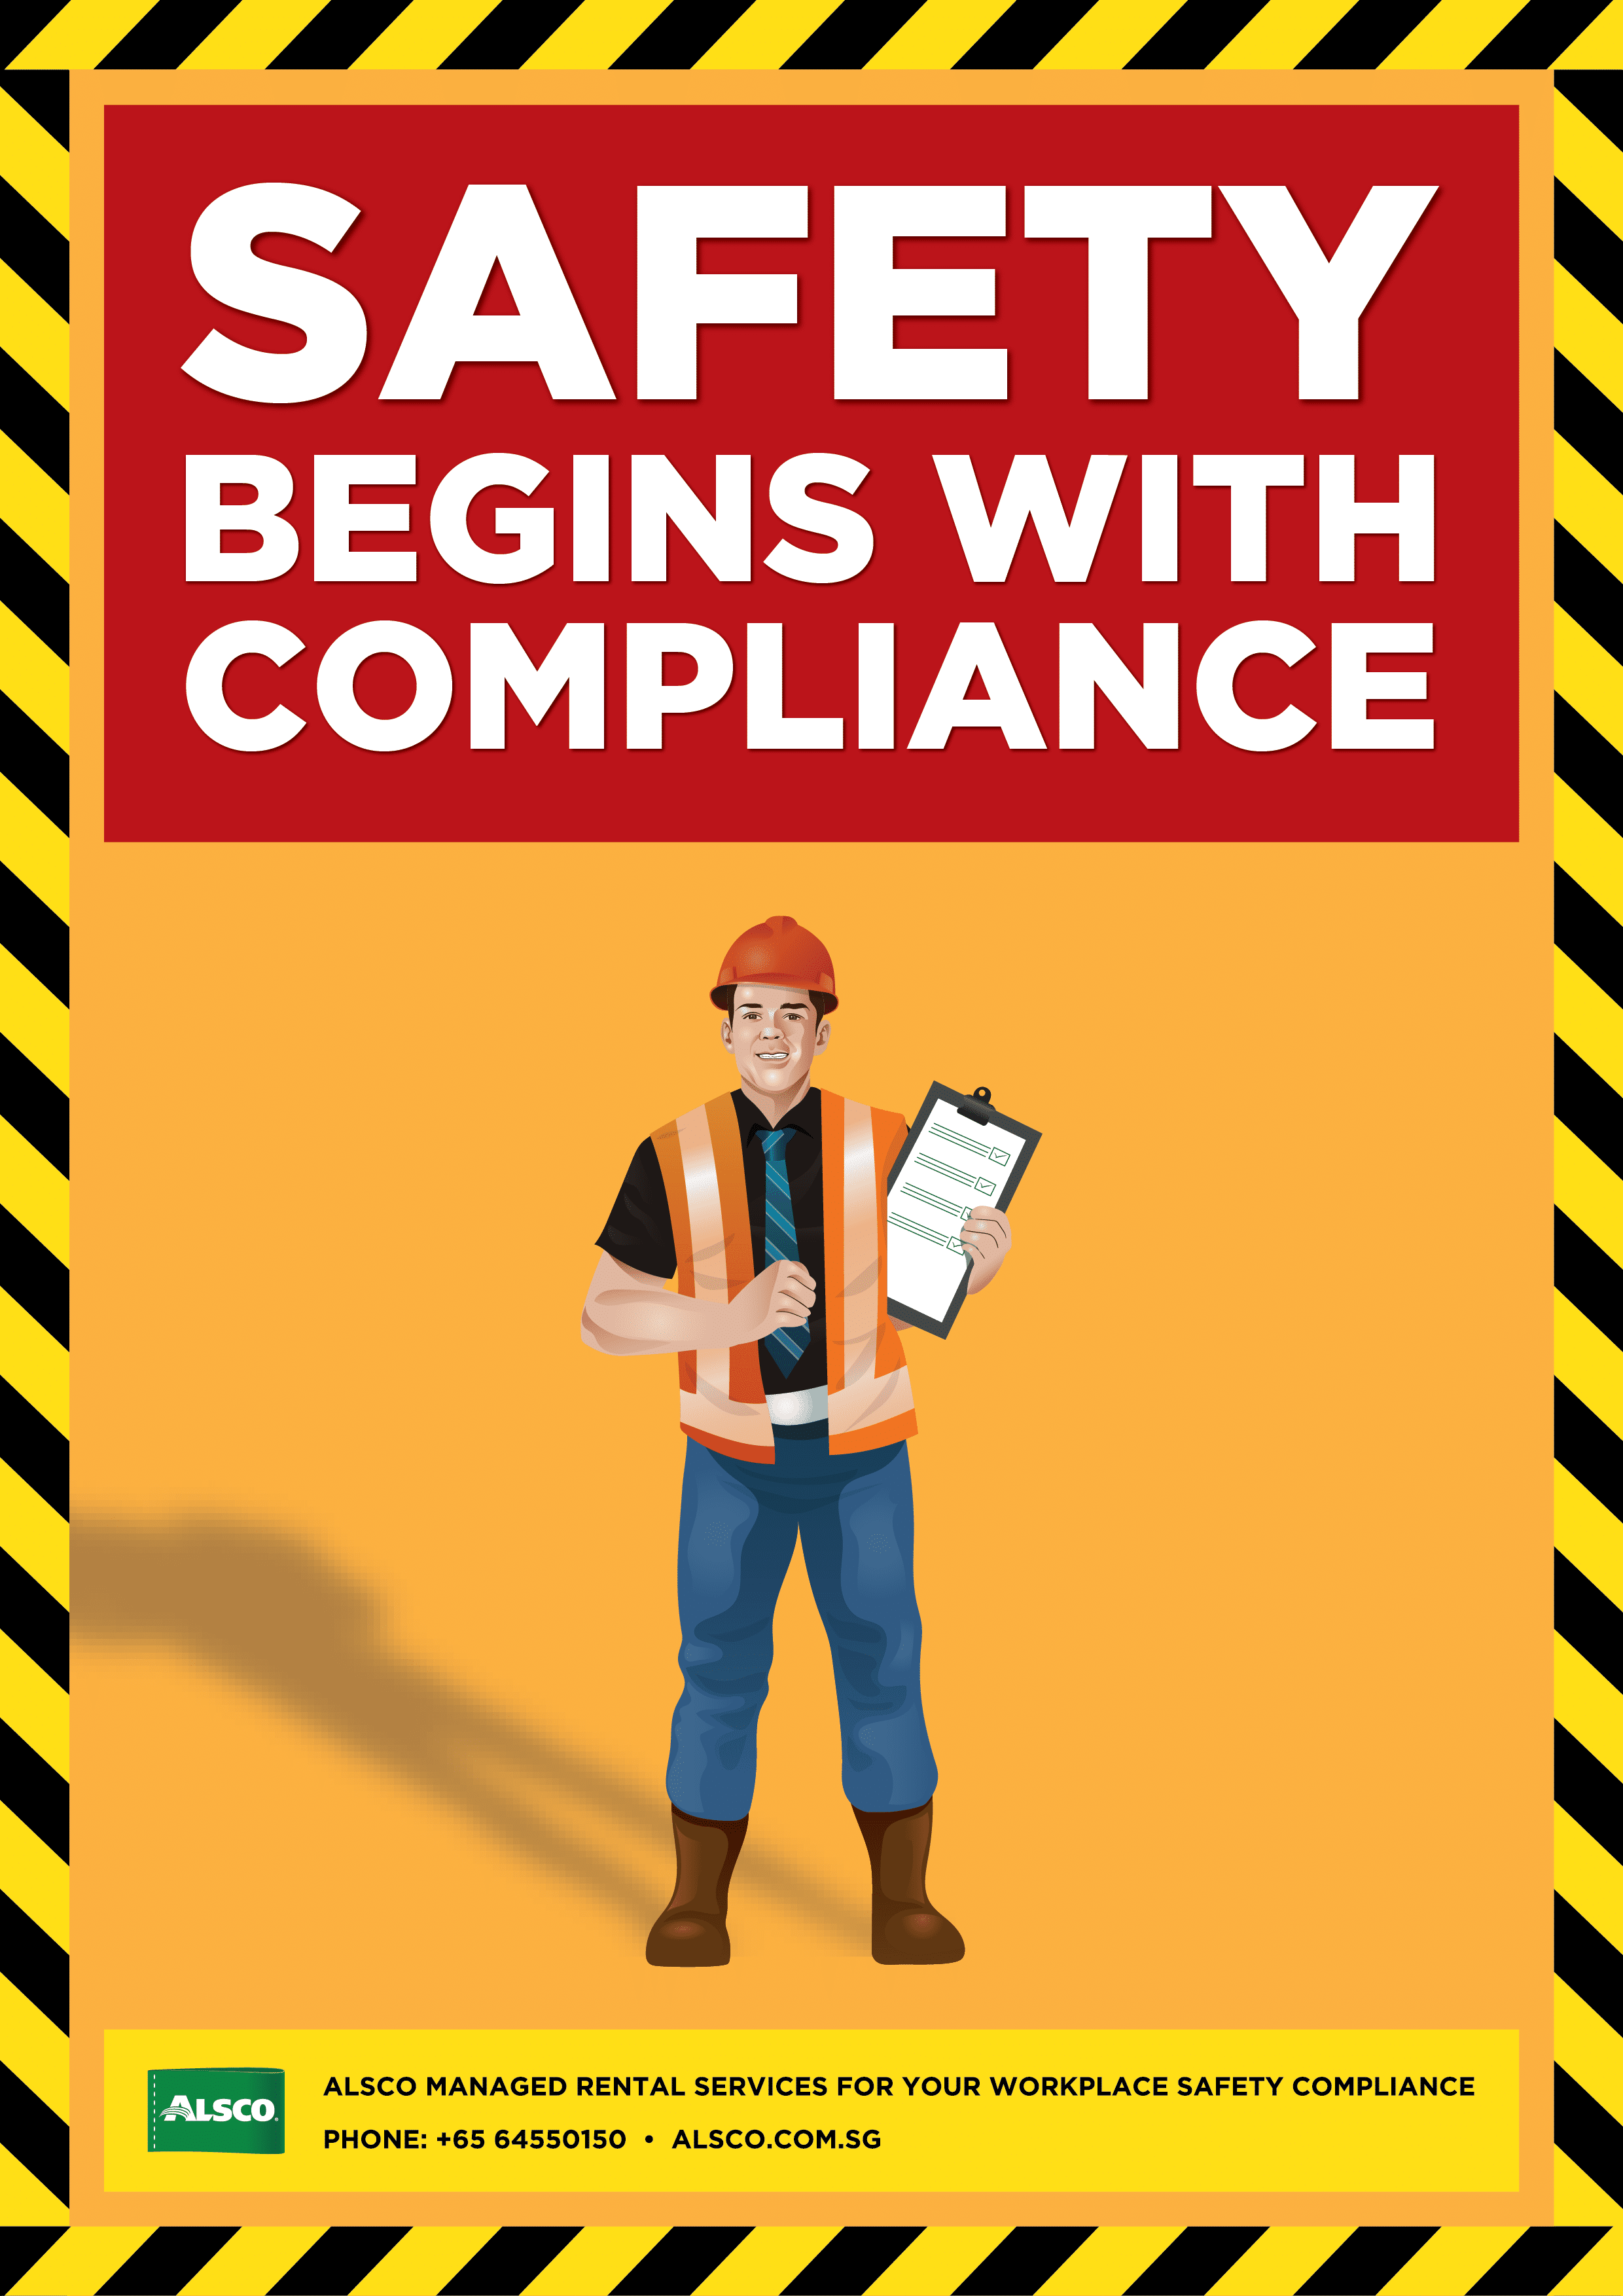 image about Free Printable Safety Posters titled Business Protection Posters Downloadable and Printable Alsco